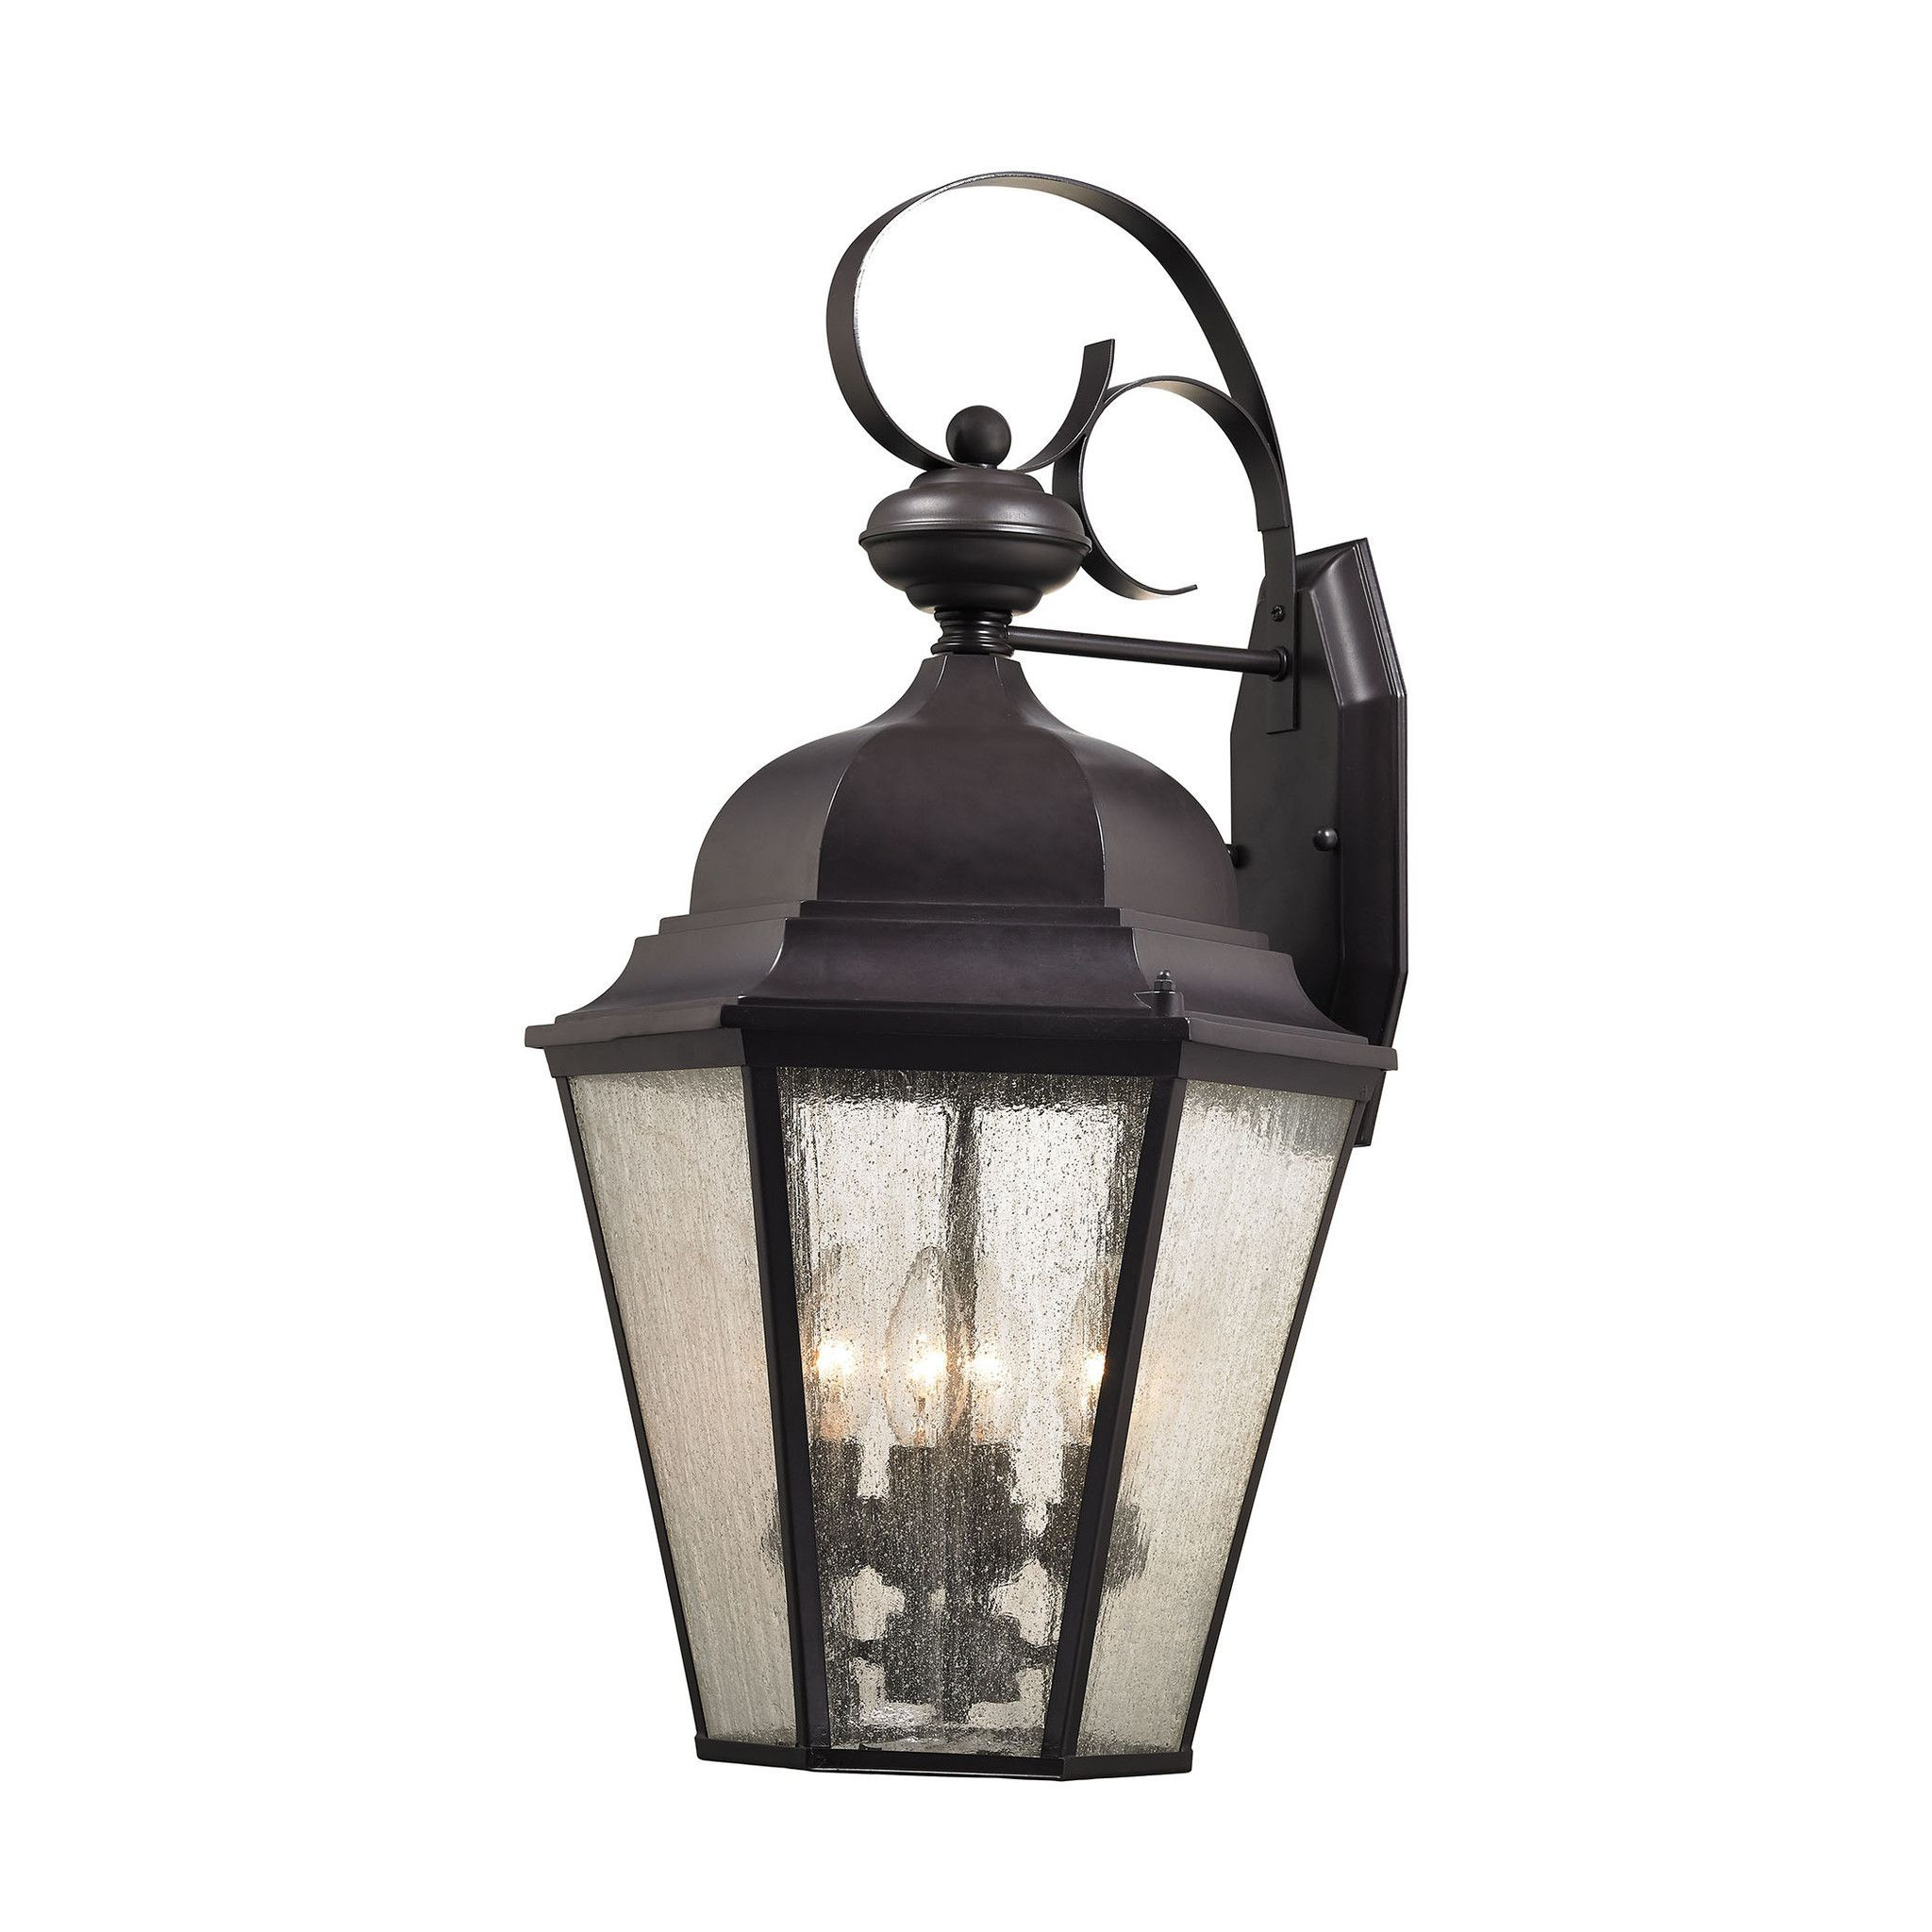 Cotswold 4 Light Outdoor Wall Sconce In Oil Rubbed Bronze